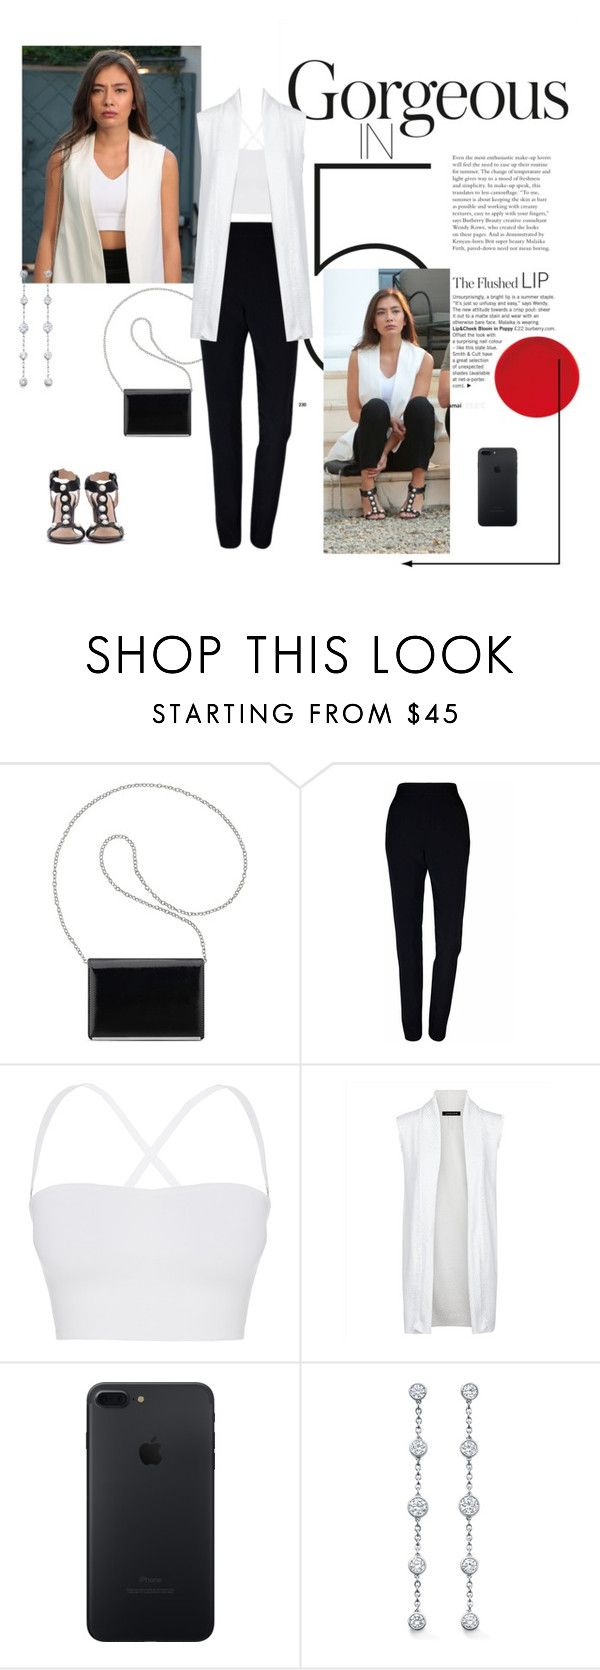 """Kara Sevda - Nihan Bolum 37 (2)"" by chaneladdicted ❤ liked on Polyvore featuring IKI, Nine West, Plakinger, Theory, Jaeger and karasevda"